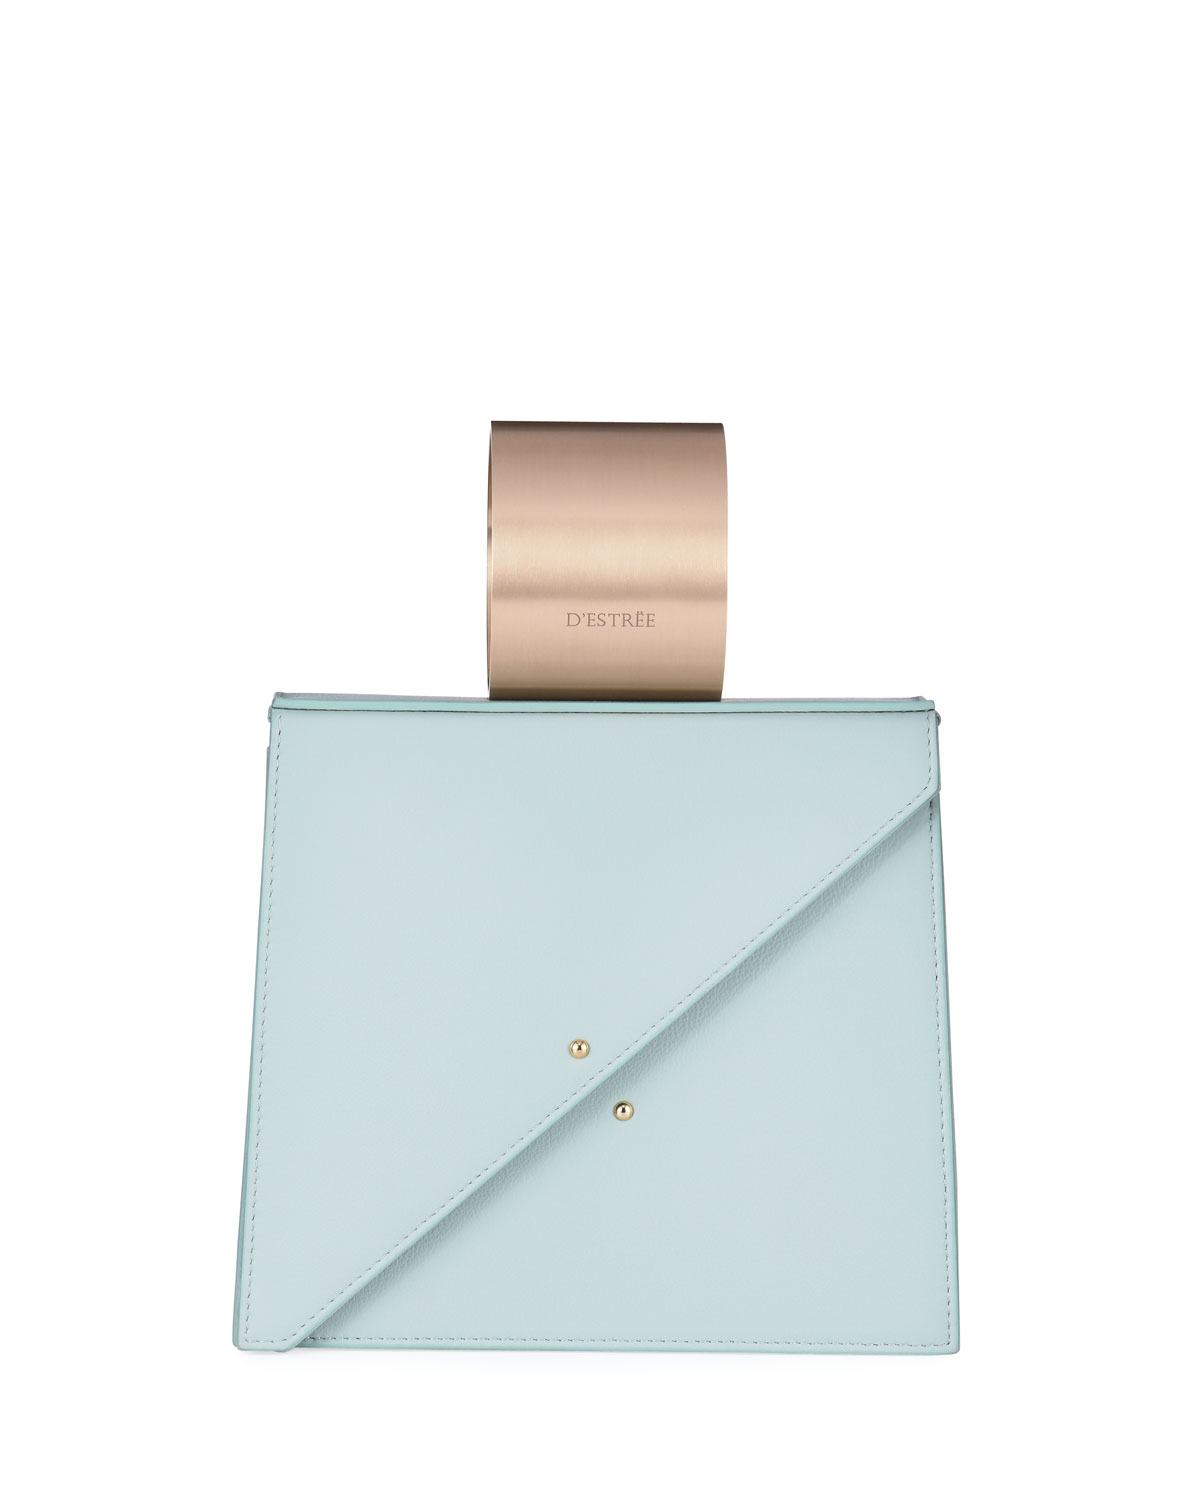 Ettore Smooth Top Handle Bag by D'estree